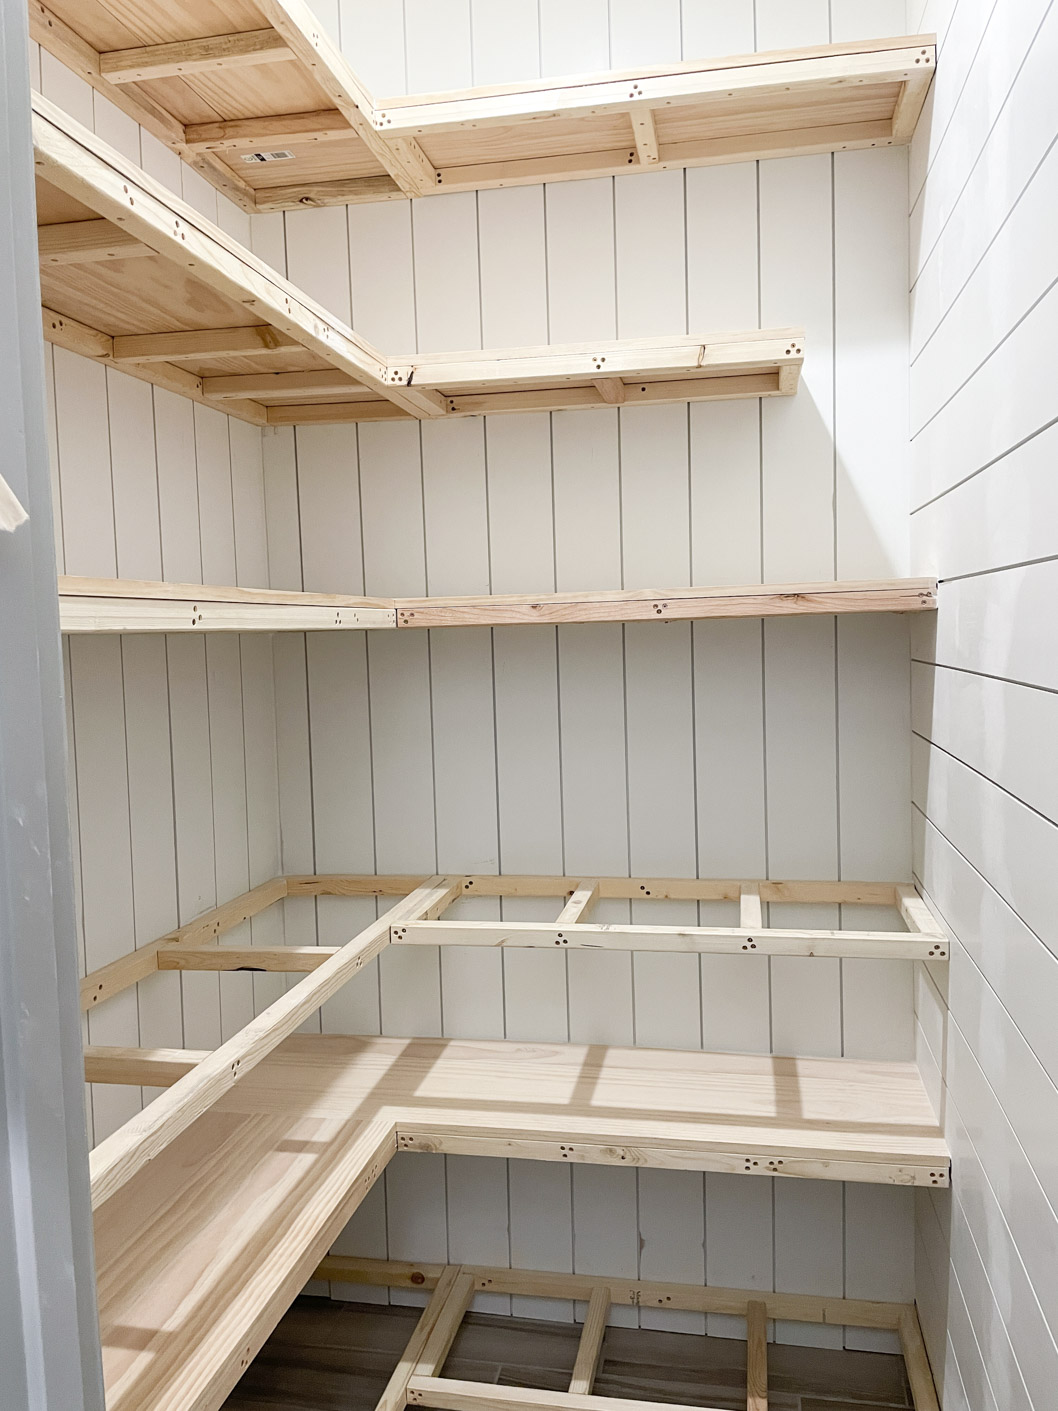 a picture showing white shiplap walls and shelves